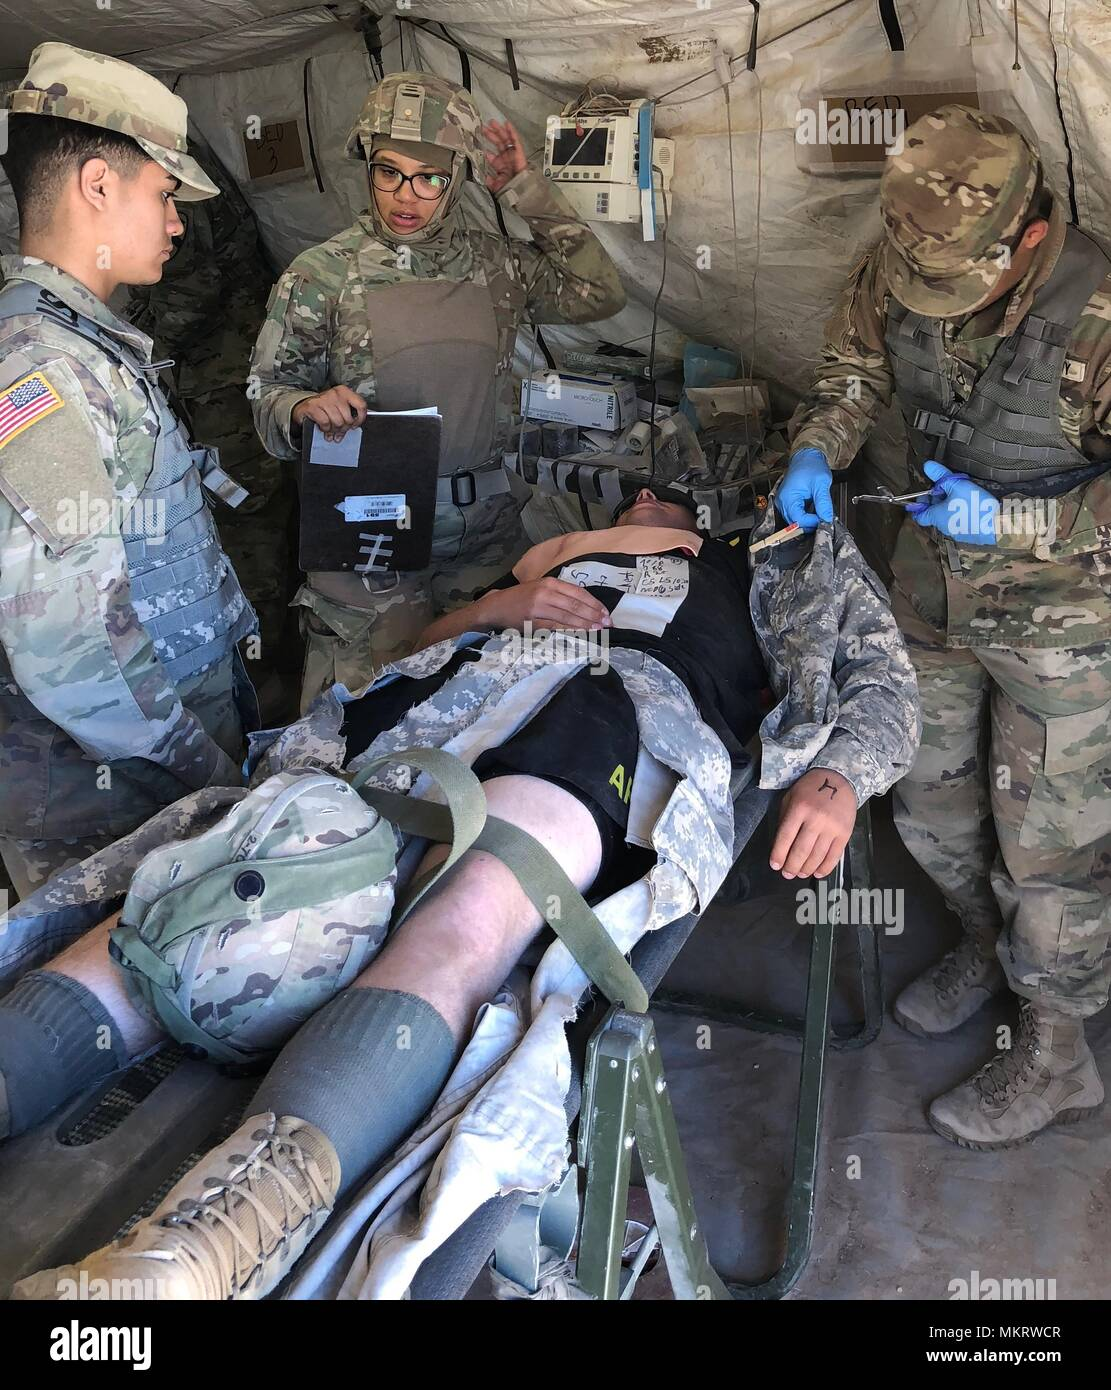 After assessing a casualty, medics from 2-7 CAV, prepare the casualty for treatment by the attending physician assistant during the MASCAL exercise on McGregor Training Complex, New Mexico, May 4, May 8, 2018. The training was part of the Multi-Echelon Integrated Brigade Training that the 155th ABCT is currently undergoing to prepare for its upcoming deployment in support of Operation Spartan Shield. () - Stock Image